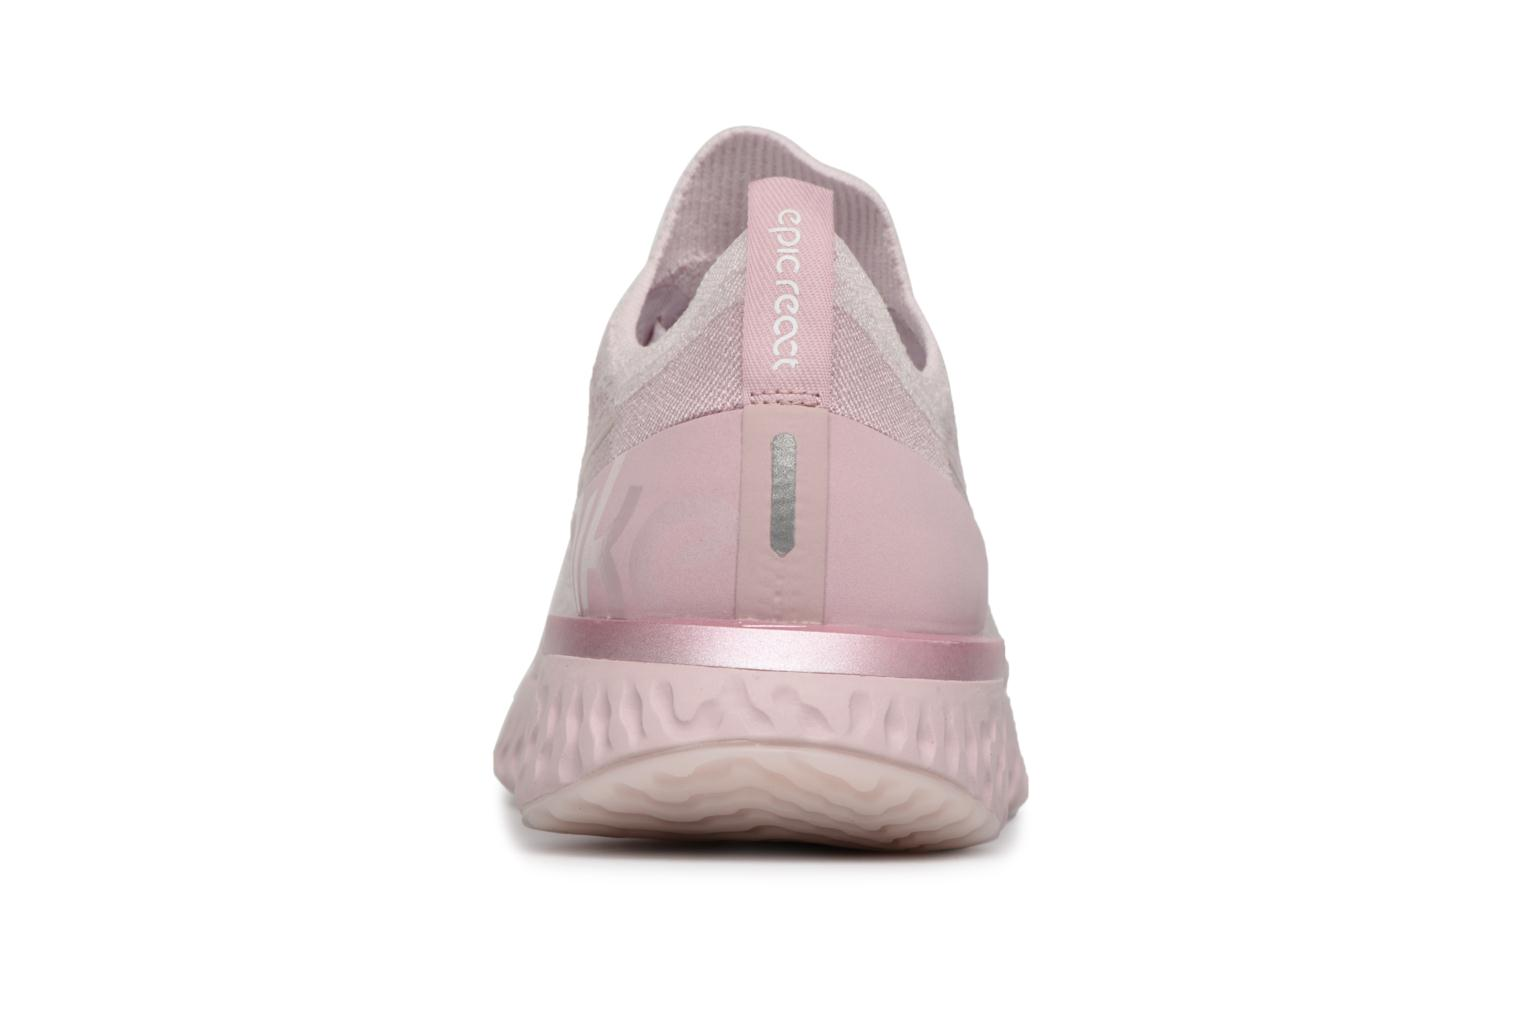 Chaussures de sport Nike Nike Epic React Flyknit Rose vue droite